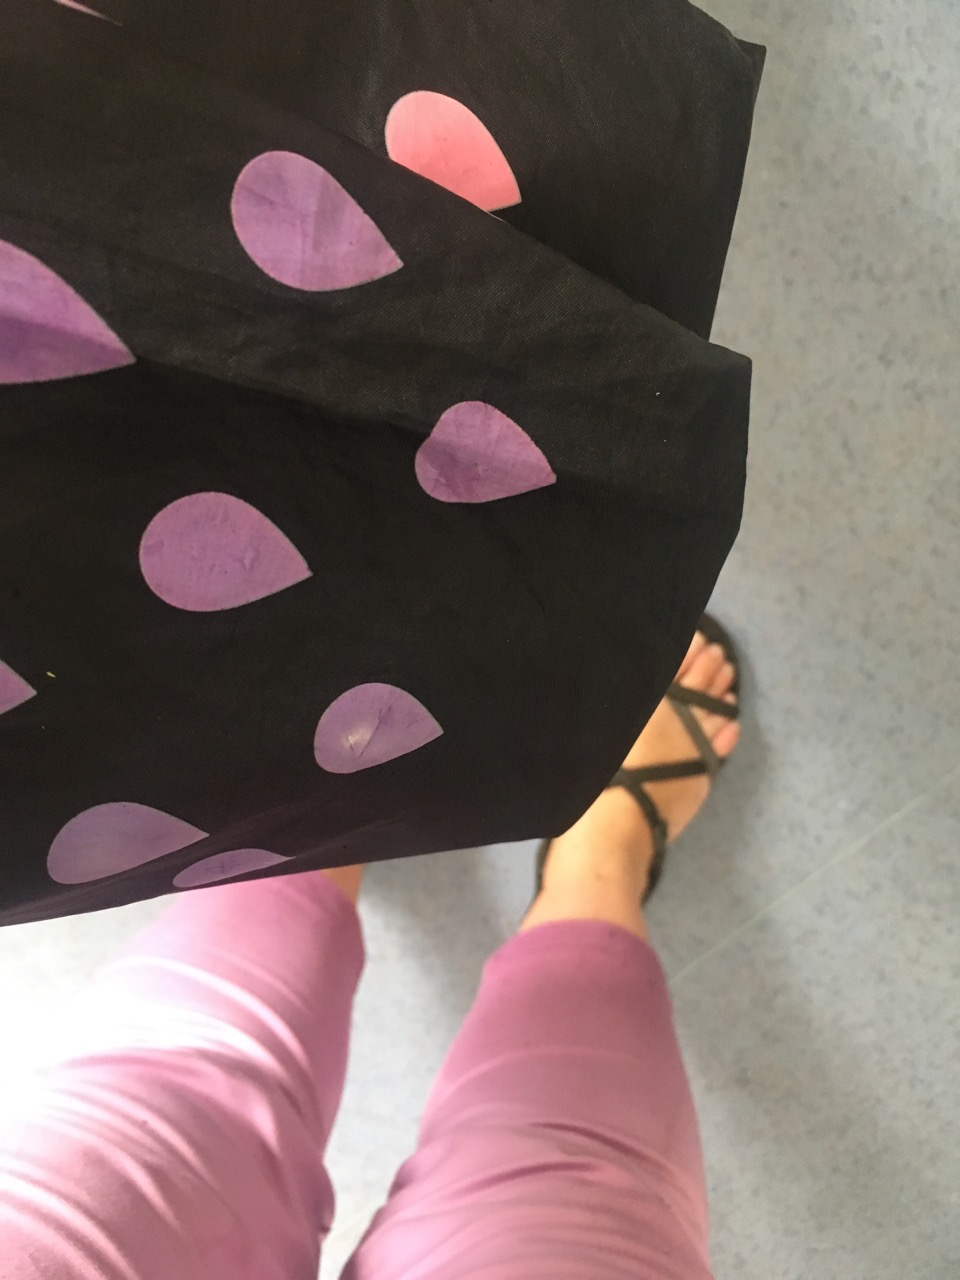 COORDINATING BROLLY AND OUTFIT (BY CHANCE)